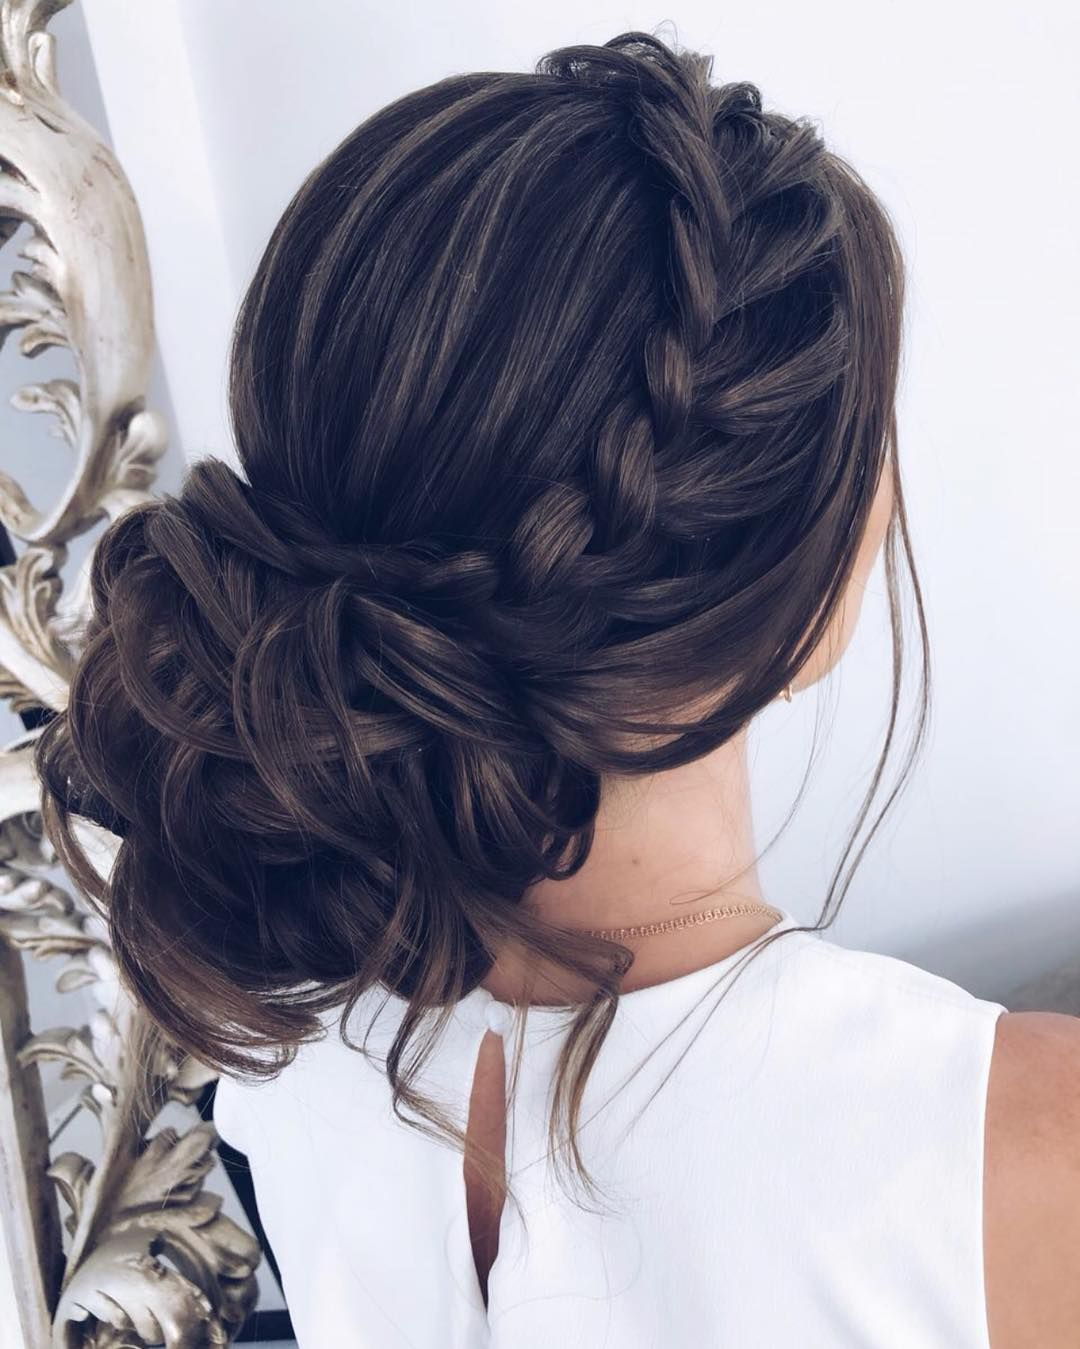 "79 Beautiful Bridal Updos Wedding Hairstyles For A Romantic Bridal Fabmood Just like for all brides when the big day is approachingmany decisions have to be made. Wedding hair is a major part of what gives you good looks. These incredible romantic wedding updo hairstyles are seriously stunningbraided updo hairstylesmessy updo hairstyles<p><a href=""http://www.homeinteriordesign.org/2018/02/short-guide-to-interior-decoration.html"">Short guide to interior decoration</a></p>"